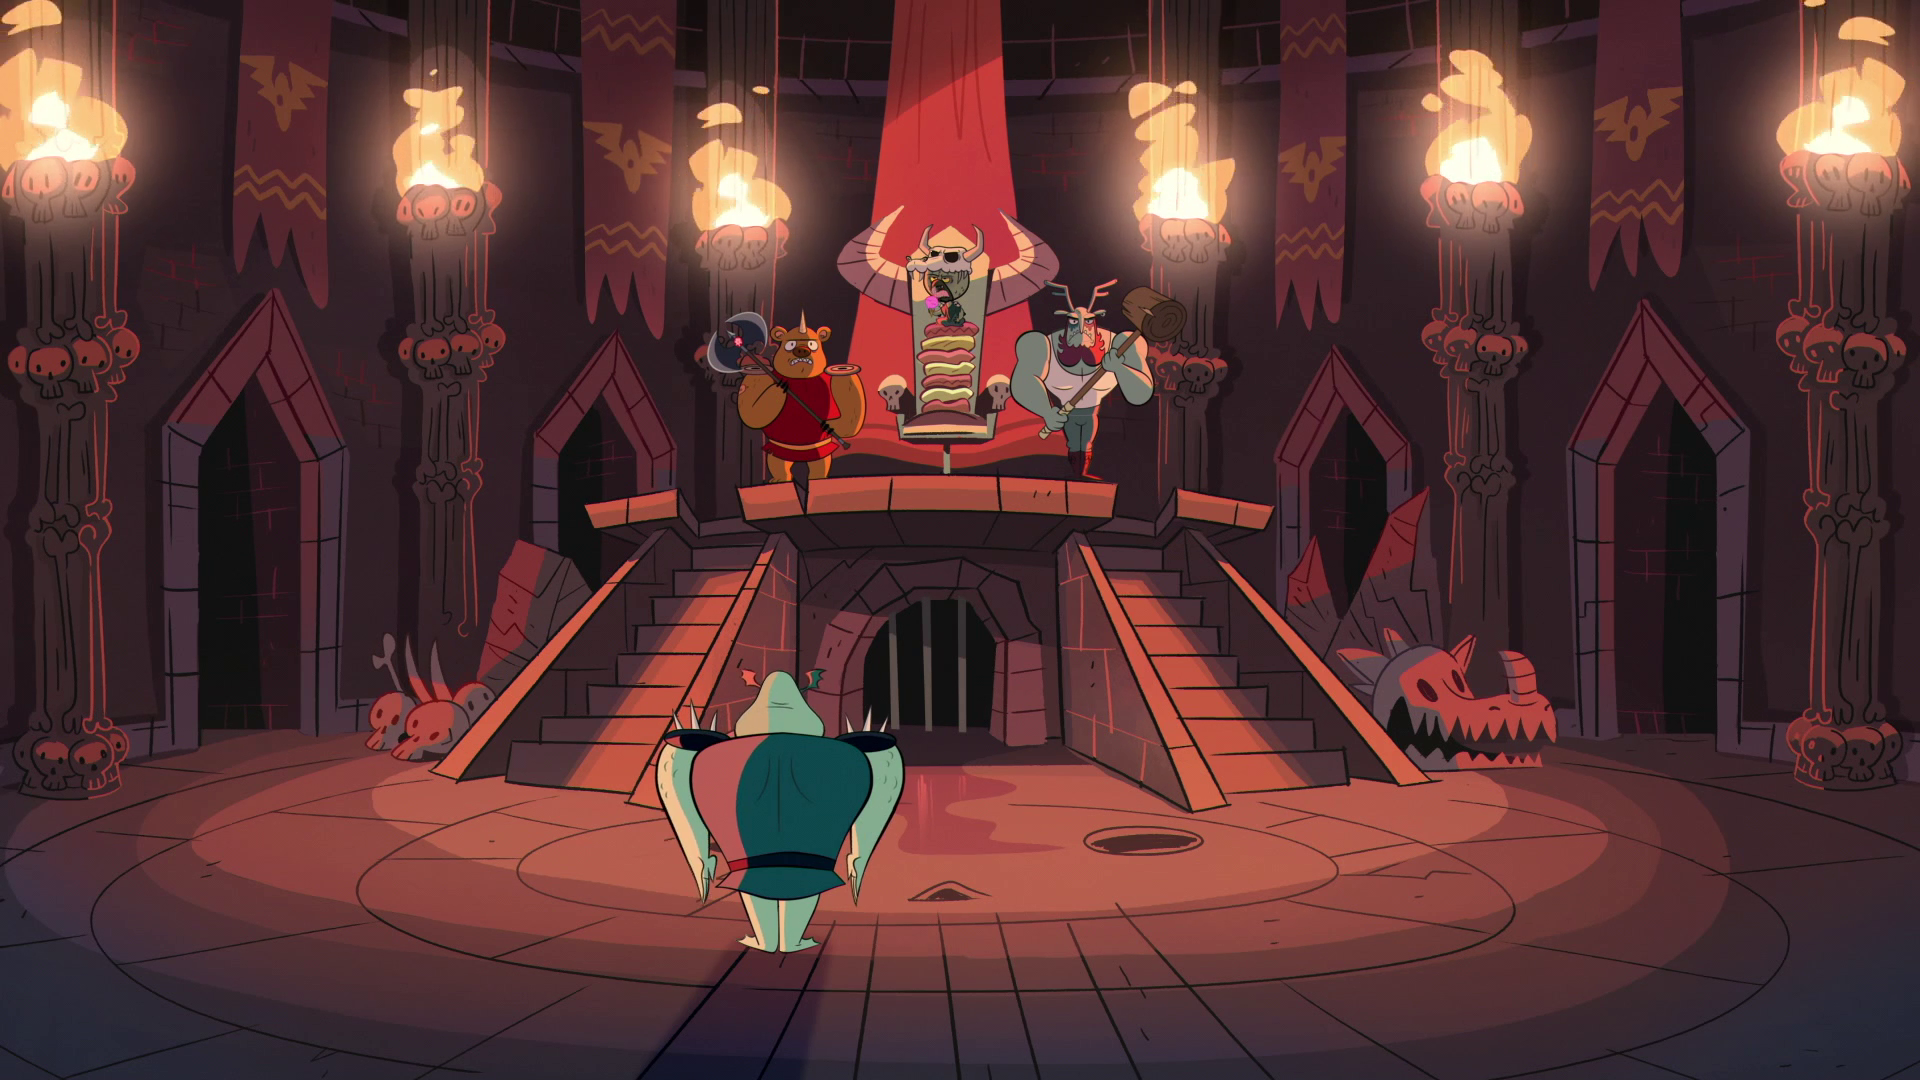 Evil kings throne room - Image S1e3 Ludo And Buff Frog In The Throne Room Png Star Vs The Forces Of Evil Wiki Fandom Powered By Wikia